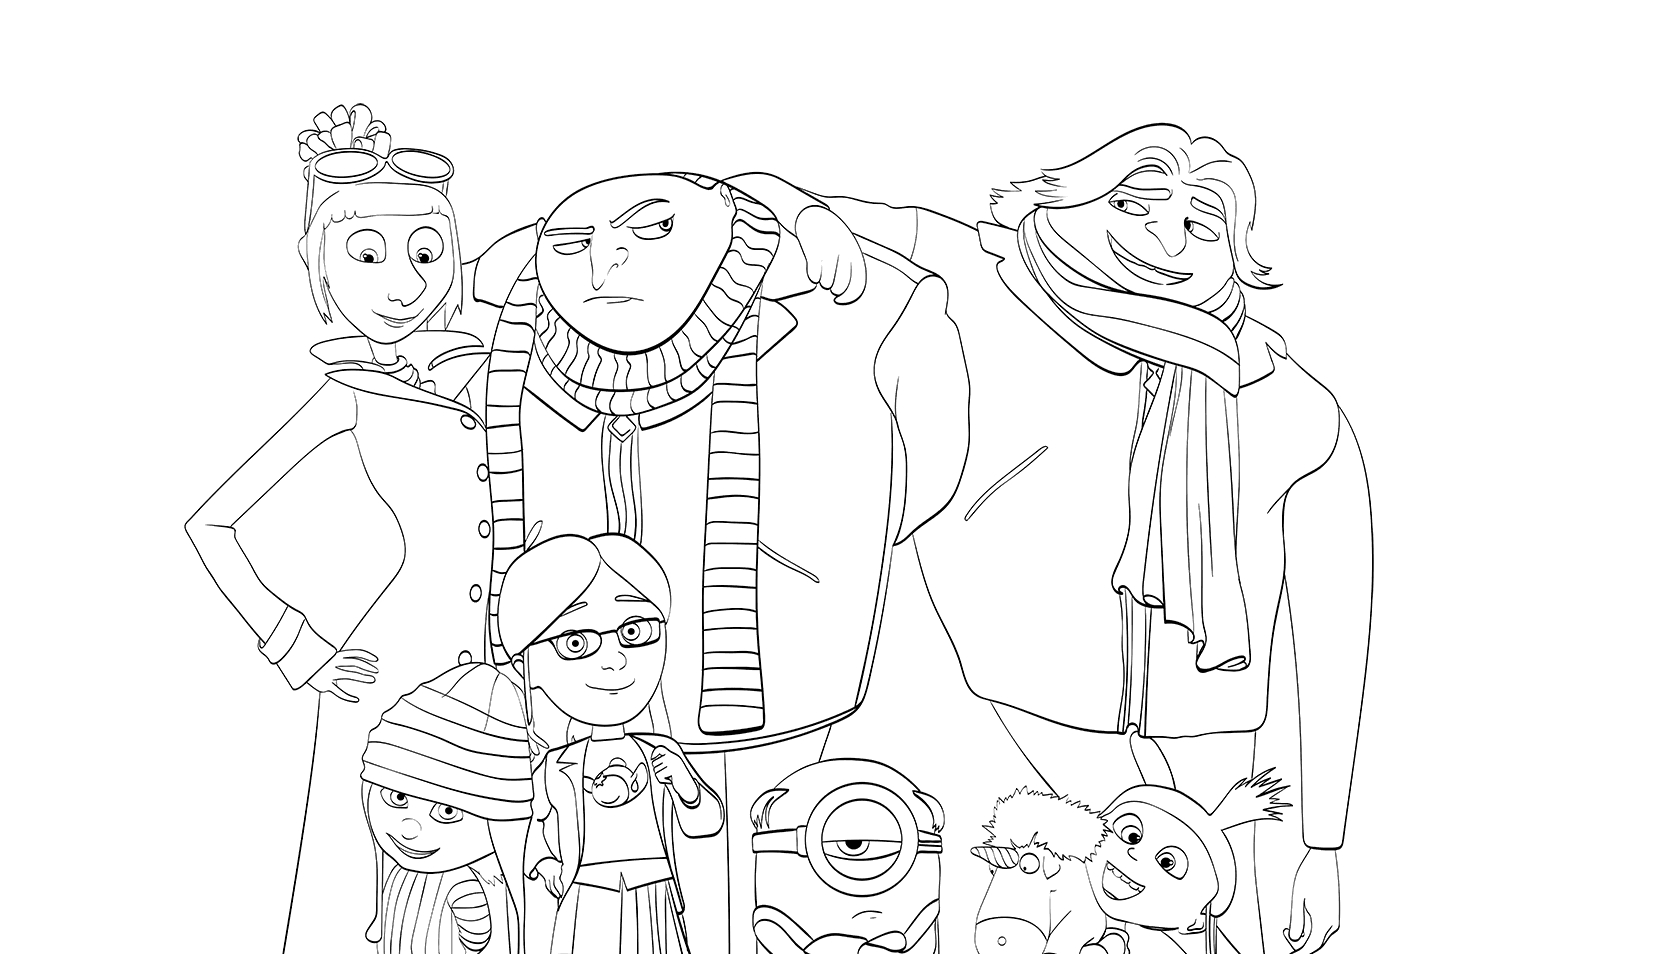 despicable me 3 coloring pages - despicable me 3 coloring pages